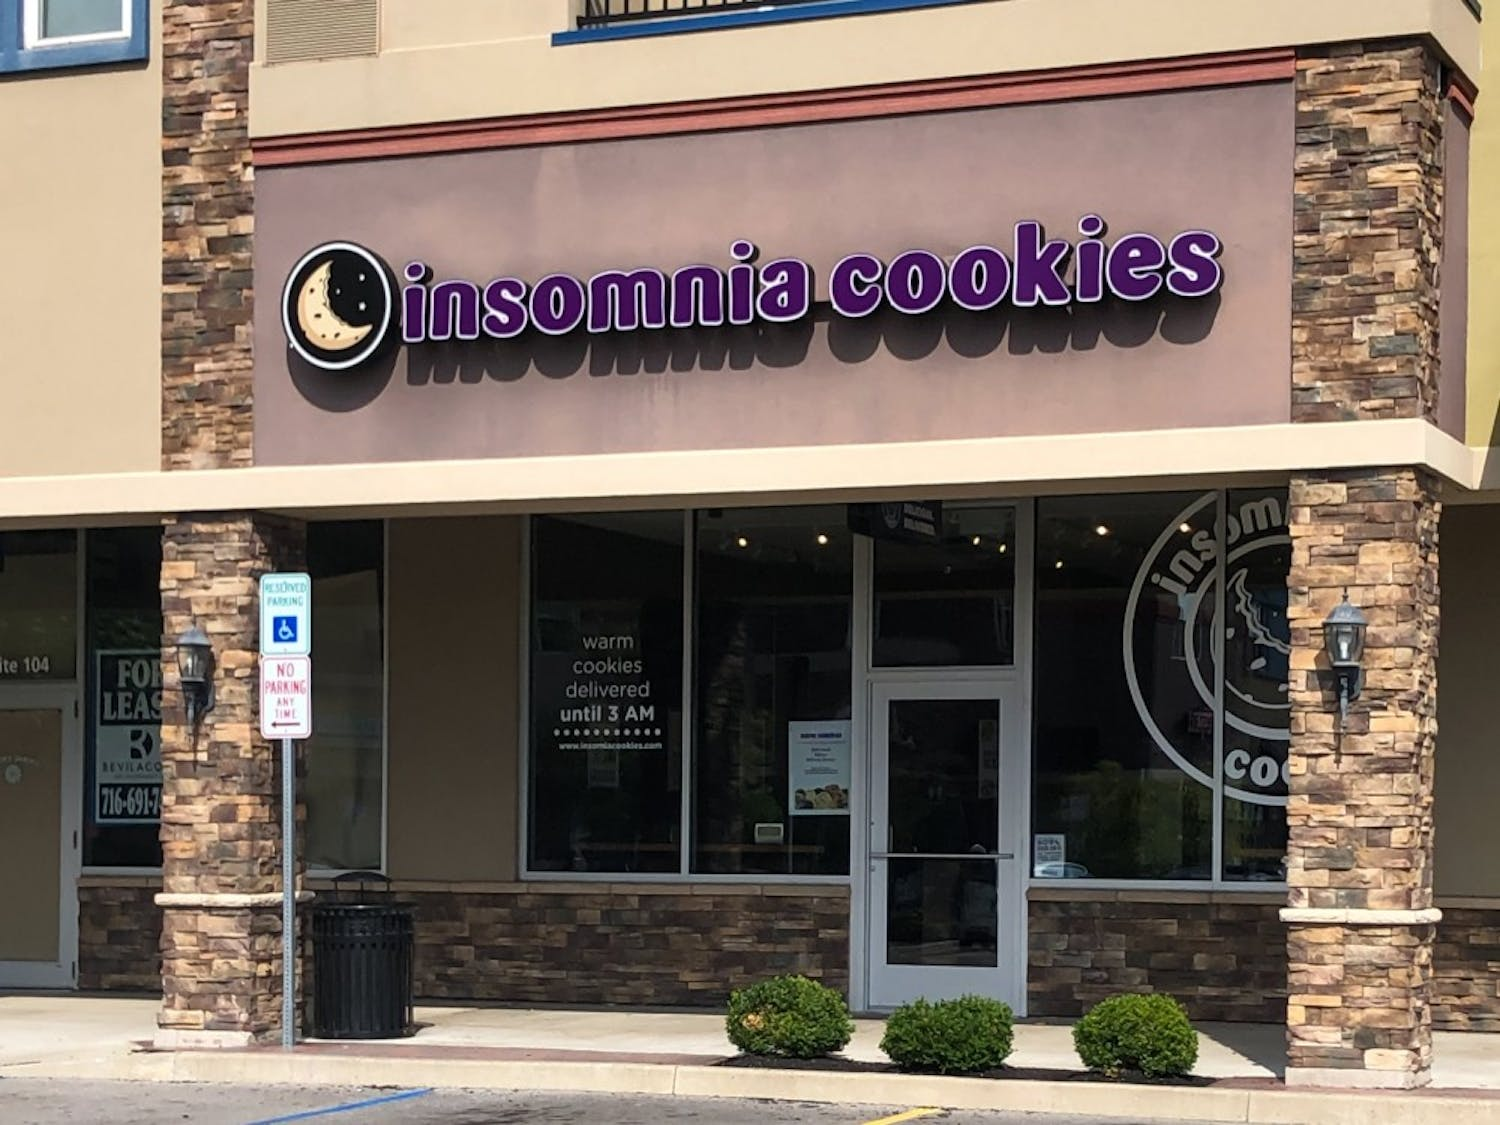 Insomnia Cookies has opened a new location across from North Campus in the University Place Plaza on Sweet Home Road, and students can't get enough.